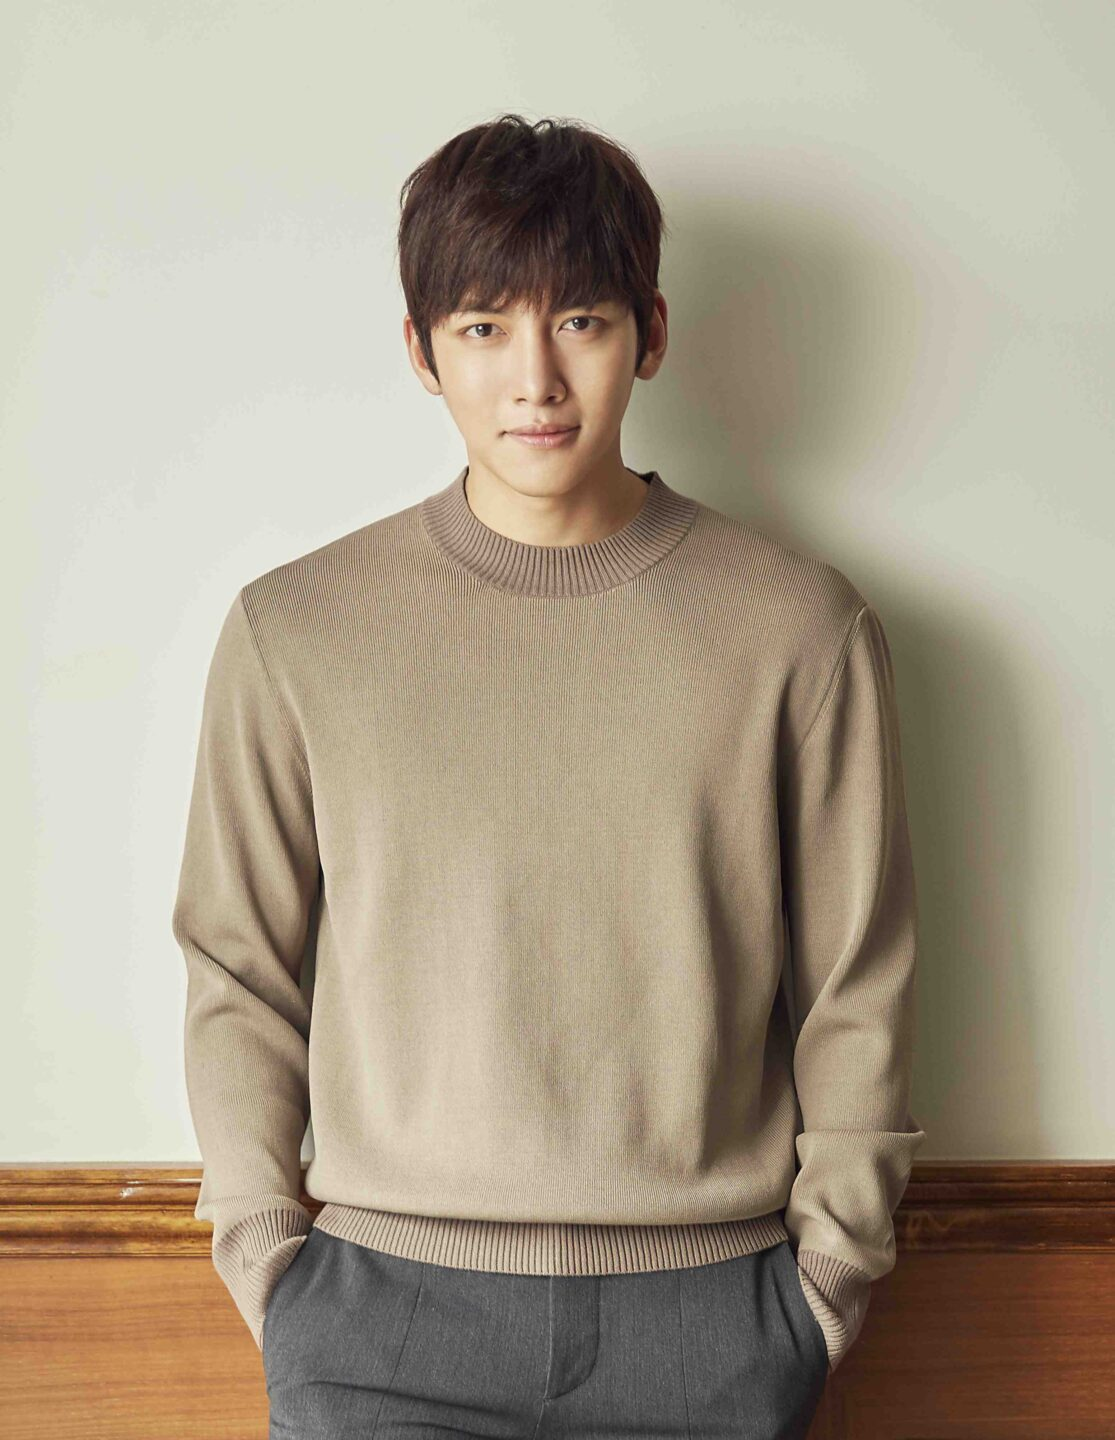 Upcoming Event Ji Chang Wook To Make First Public Appearance As